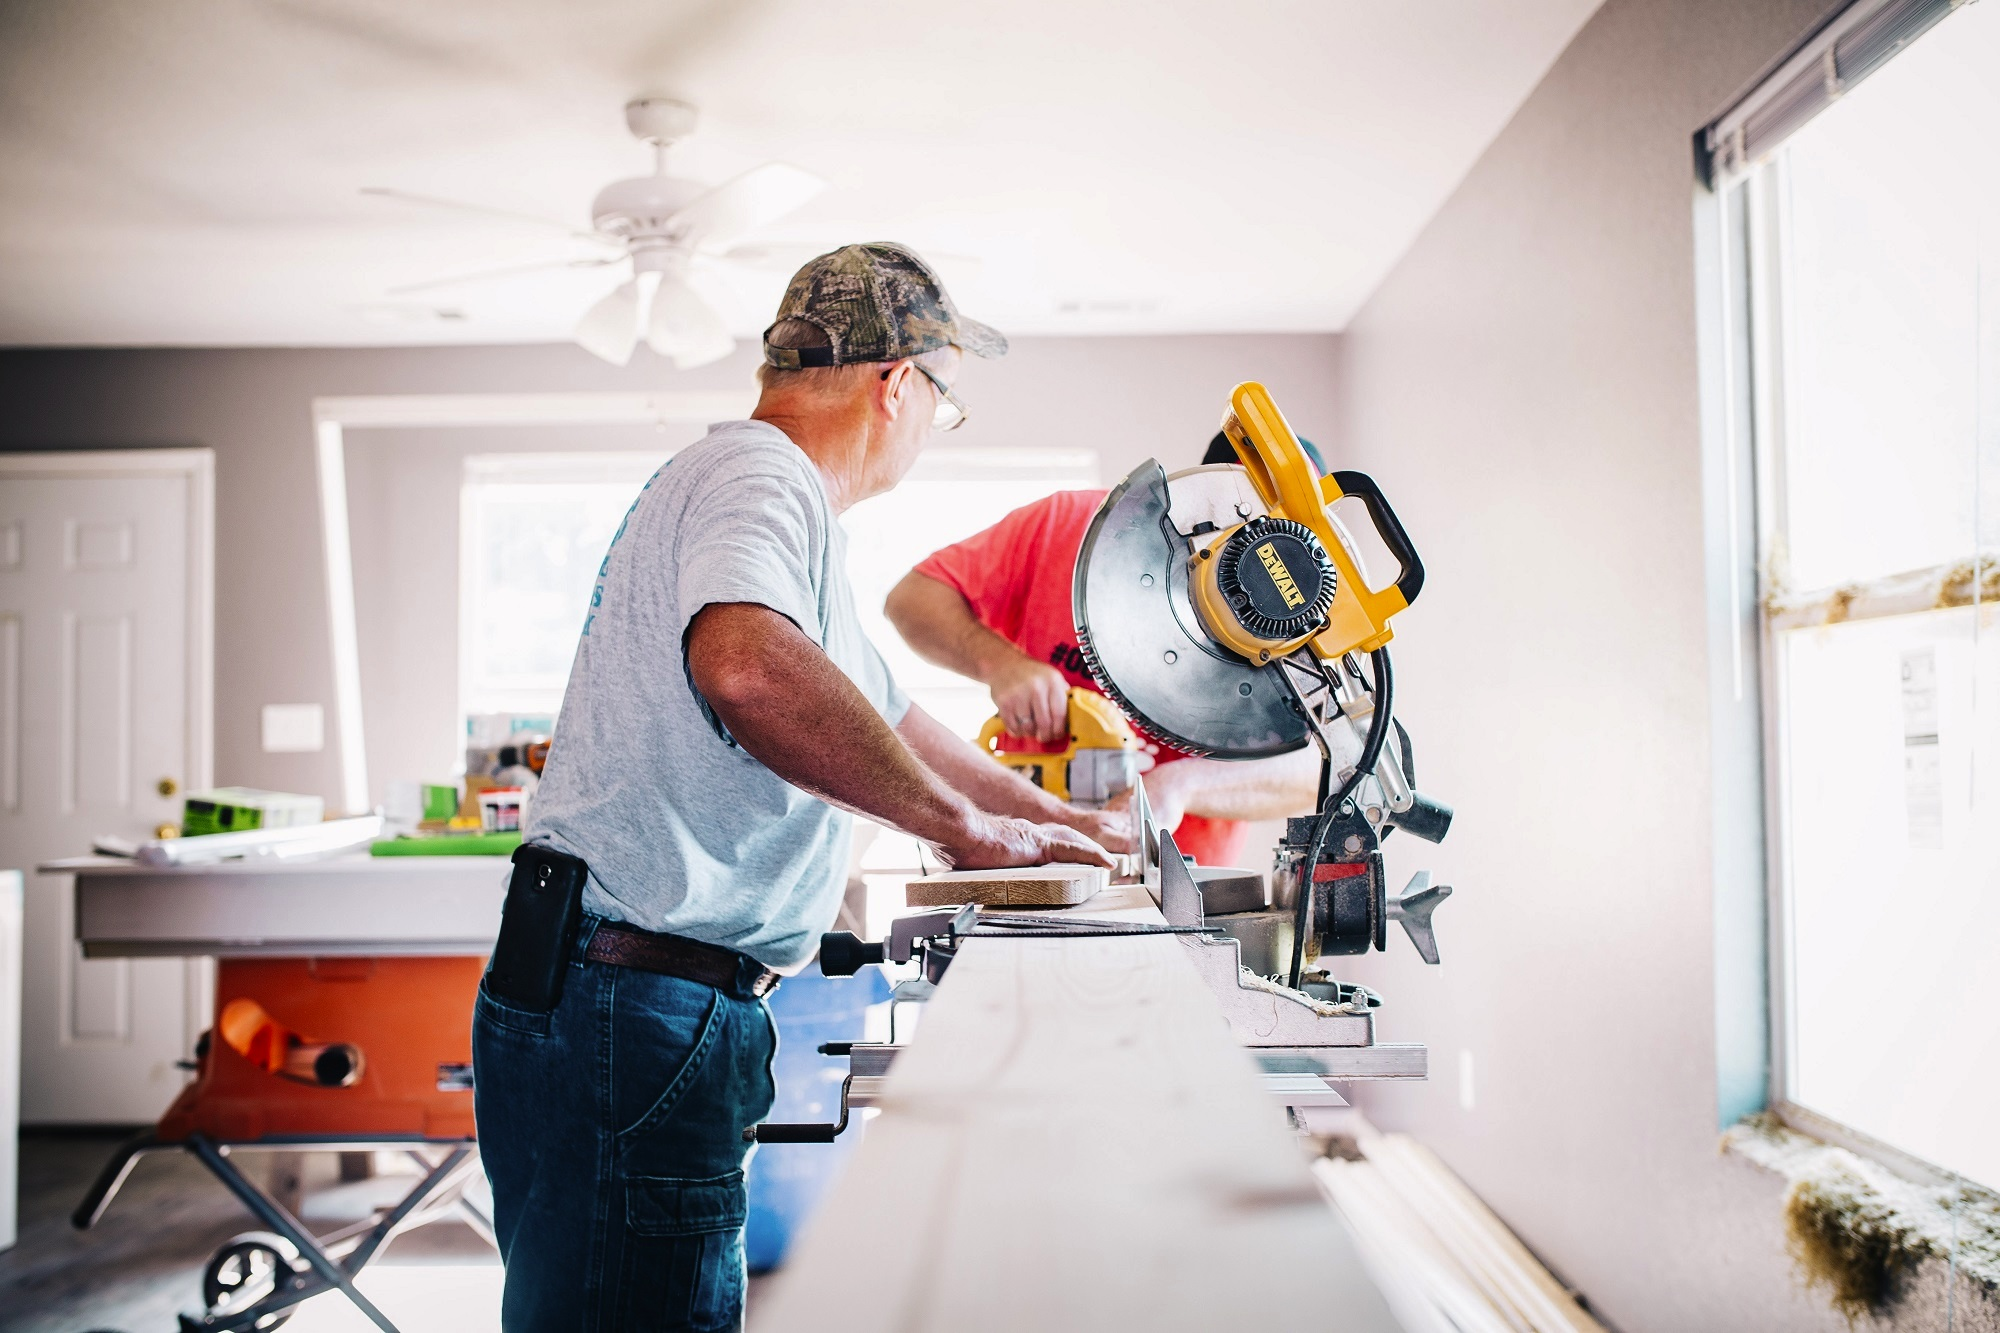 Joinery Business for Sale (5 day week) - Semi-Managed NSW & Gold Coast Borde